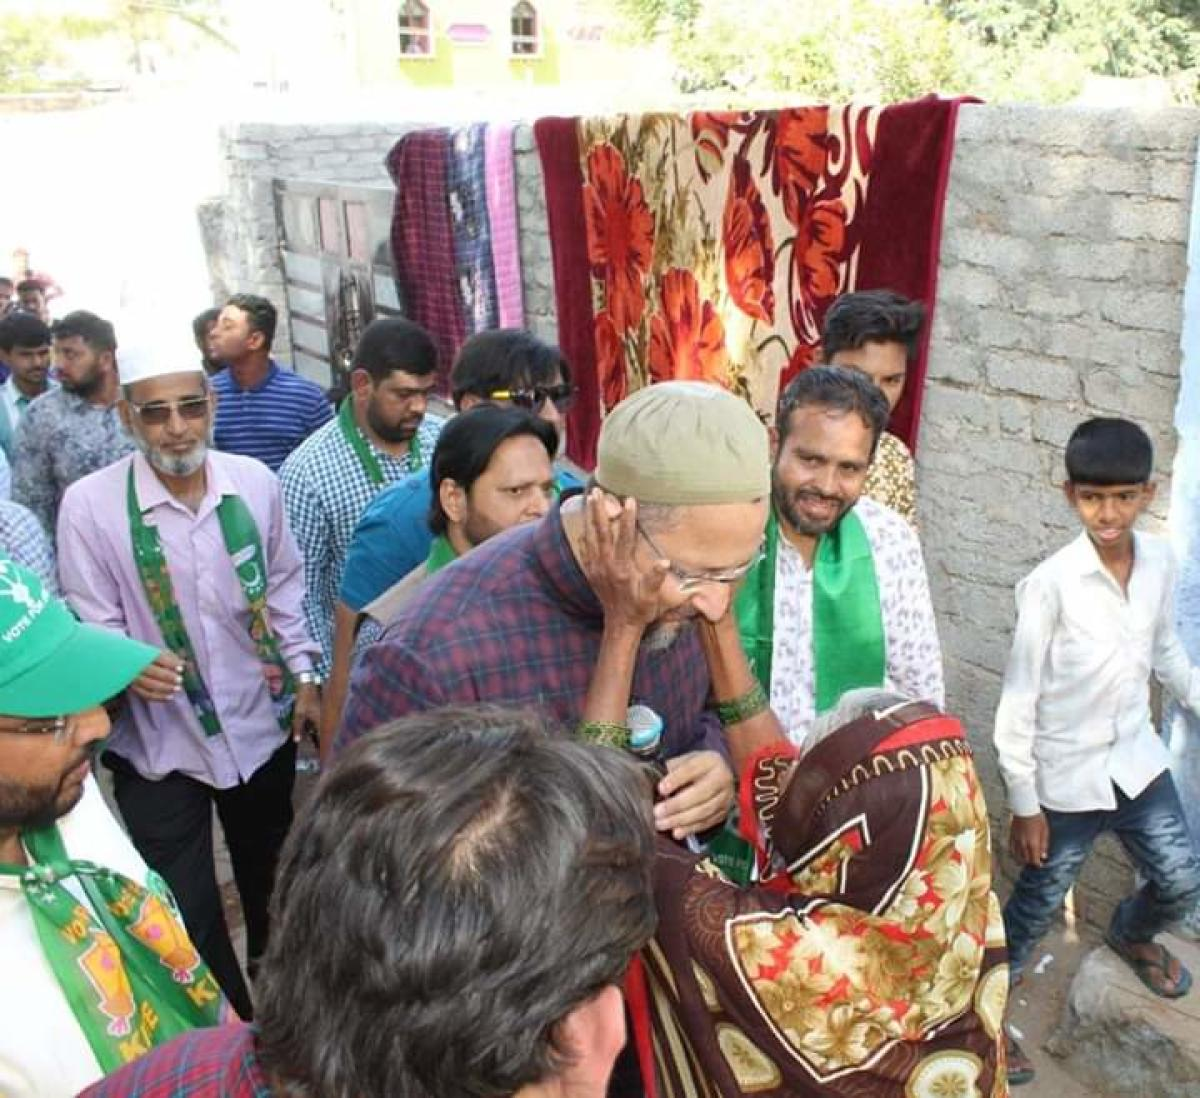 Asaduddin Owaisi during his campaign in Hyderabad Old City. DH PHOTO